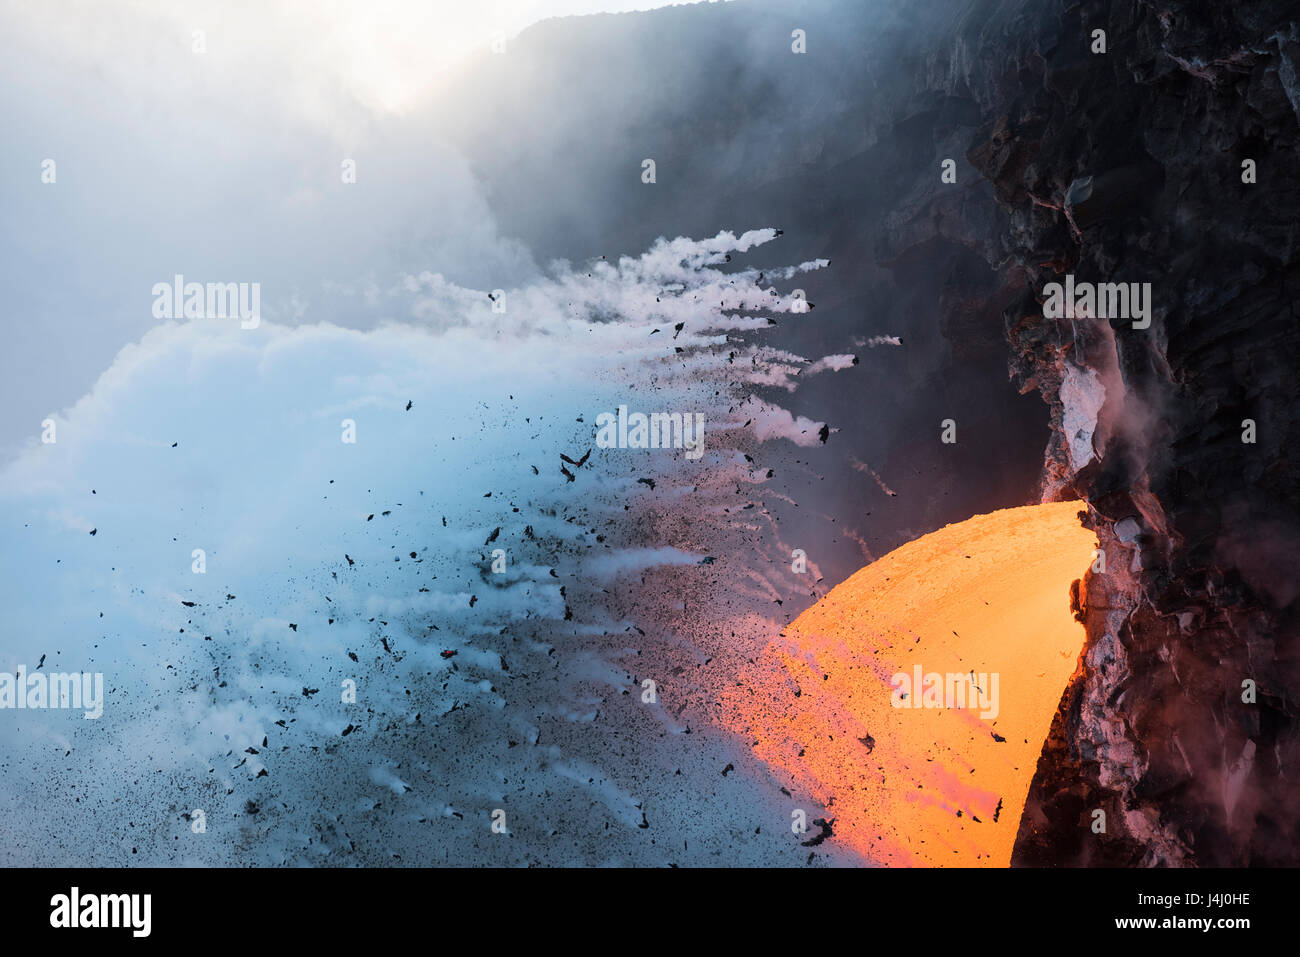 steam explosions where hot lava from Kilauea Volcano enters the ocean at the 61G Kamokuna entry in Hawaii Volcanoes - Stock Image